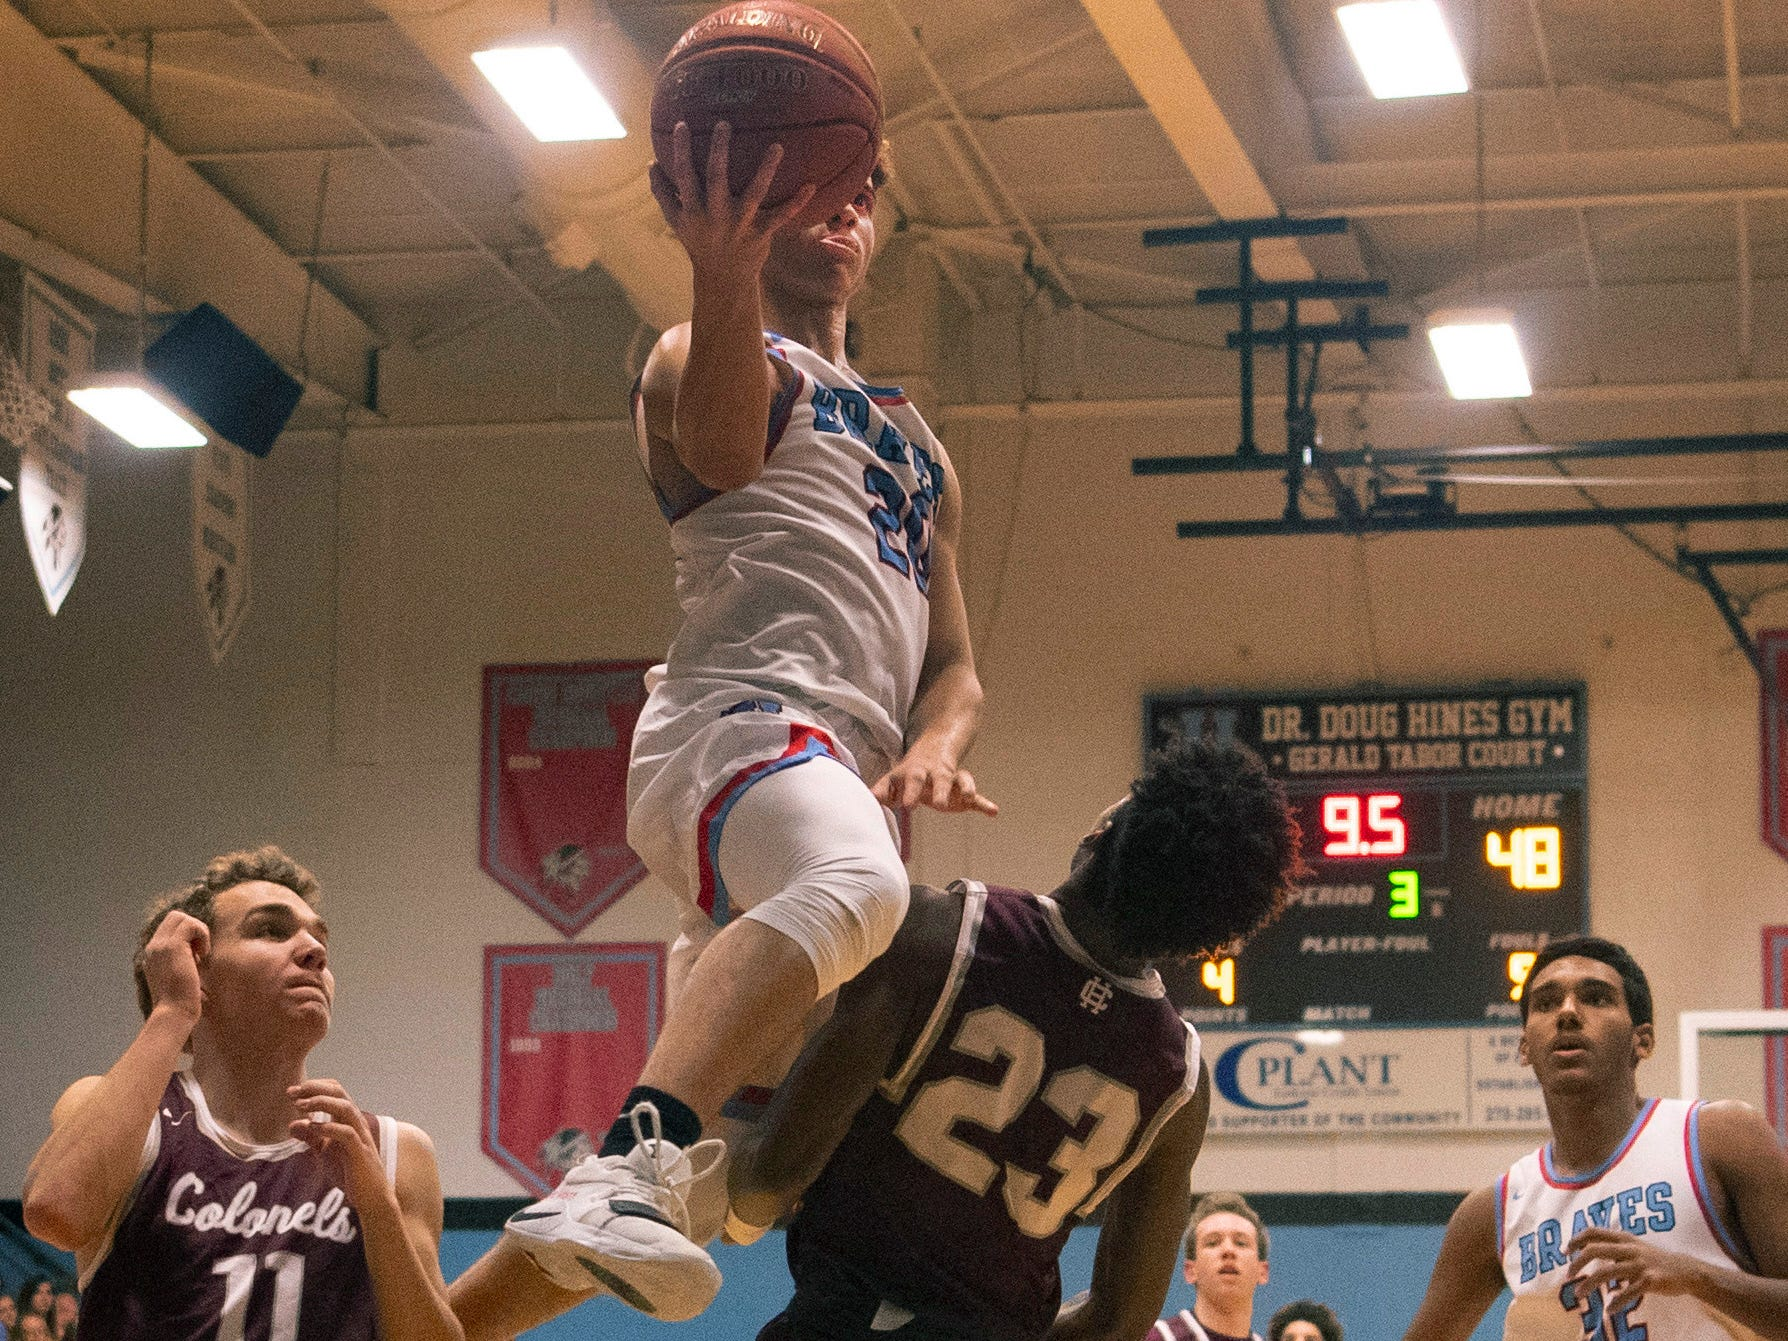 Union County's Kale Gaither (20) goes up for a layup against Henderson County's Myekel Sanners (23) at Union County High School Monday night. Sanners was called for a blocking foul on the play.